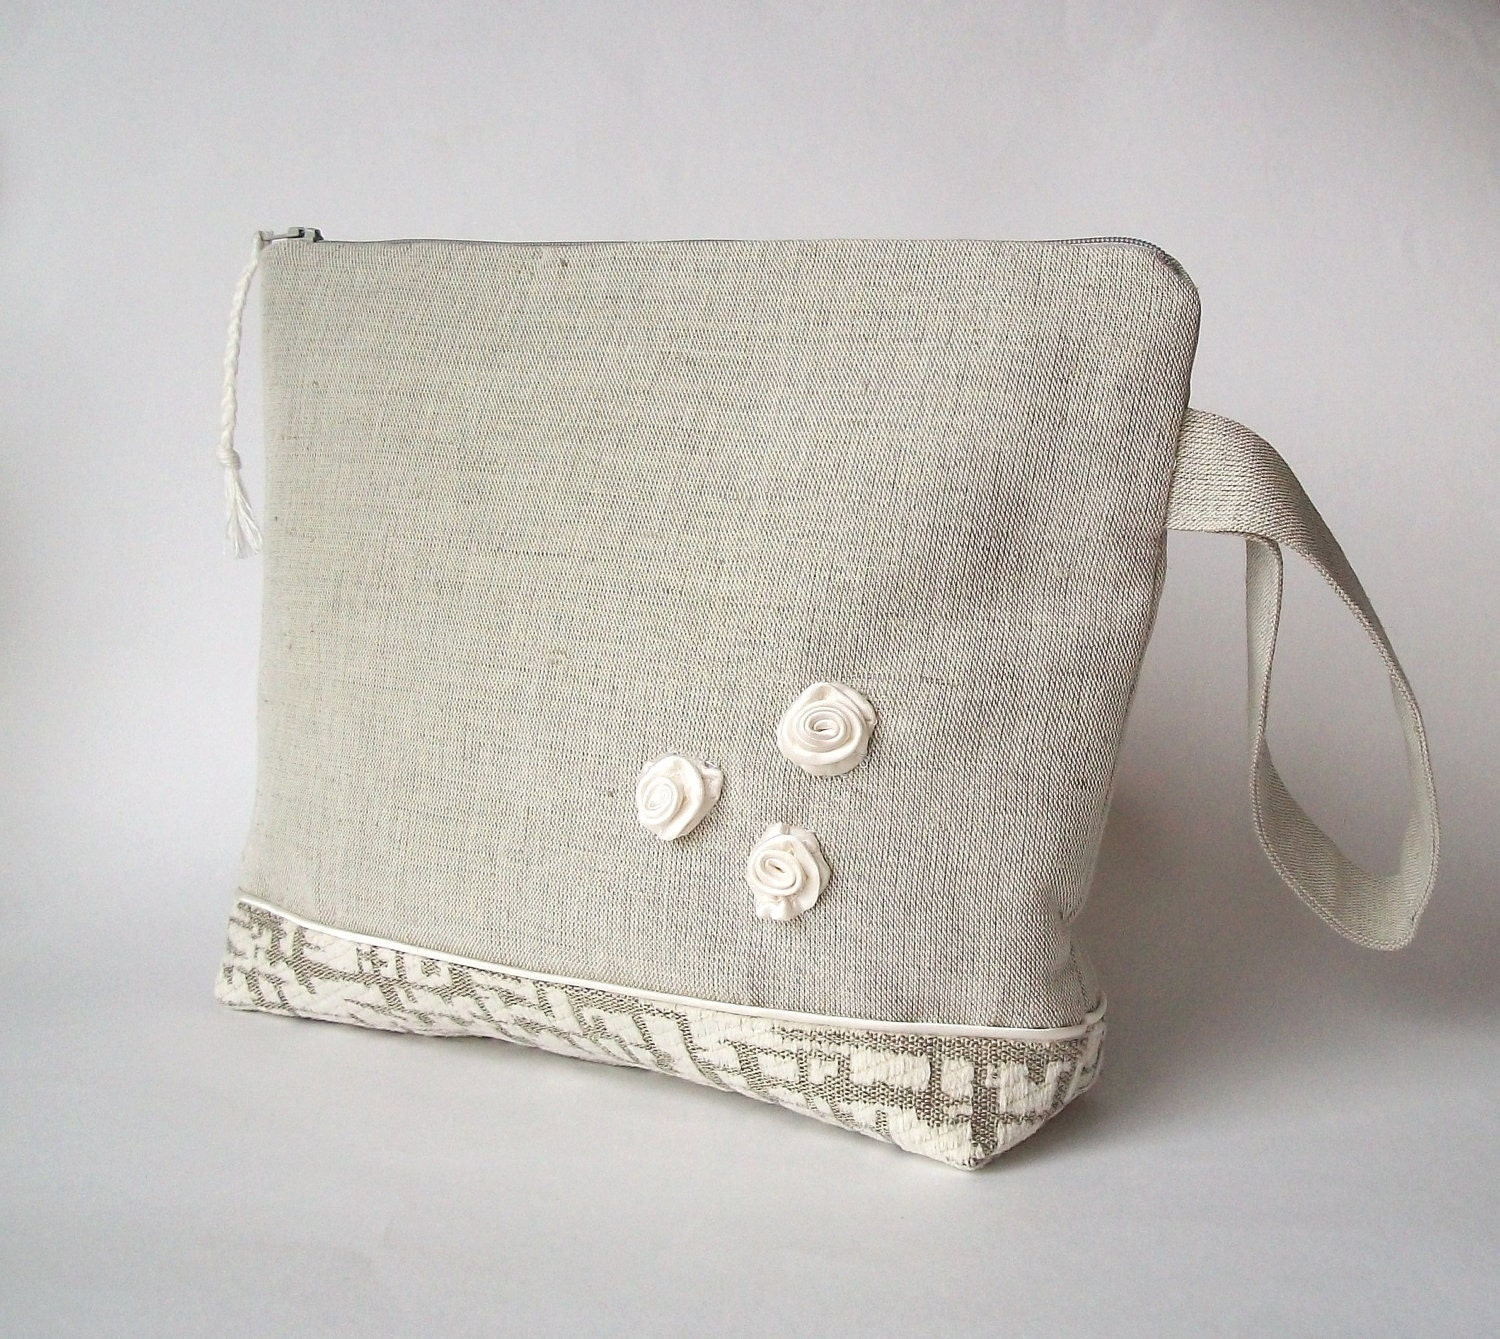 Knitting bag crochet bag yarn holder linen project by ProjectBag